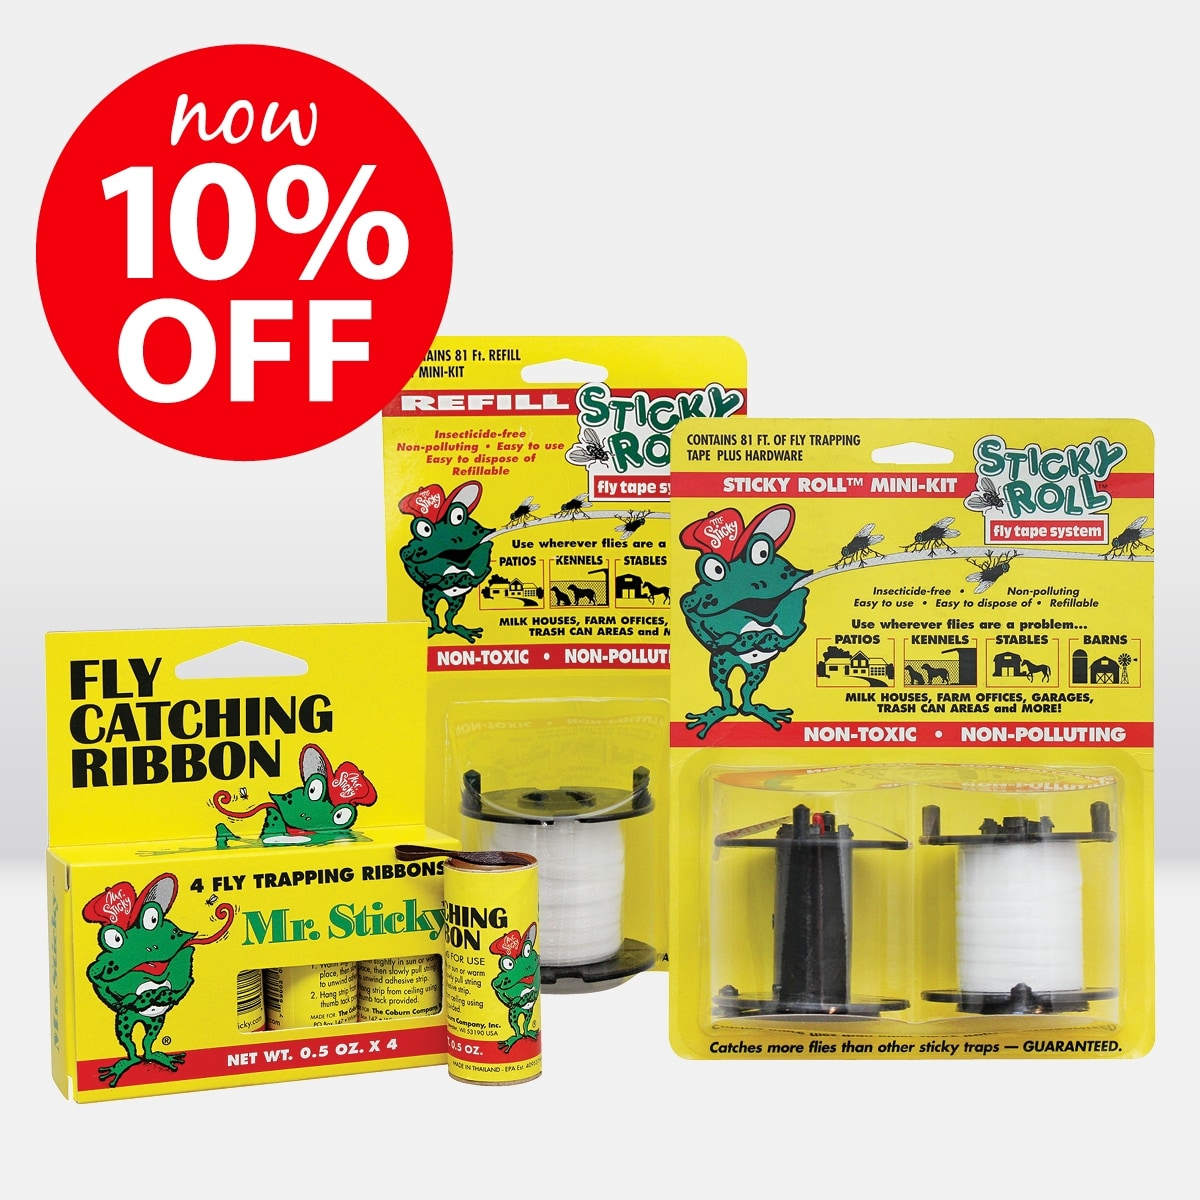 Sticky Roll Fly Catching Range ON SALE